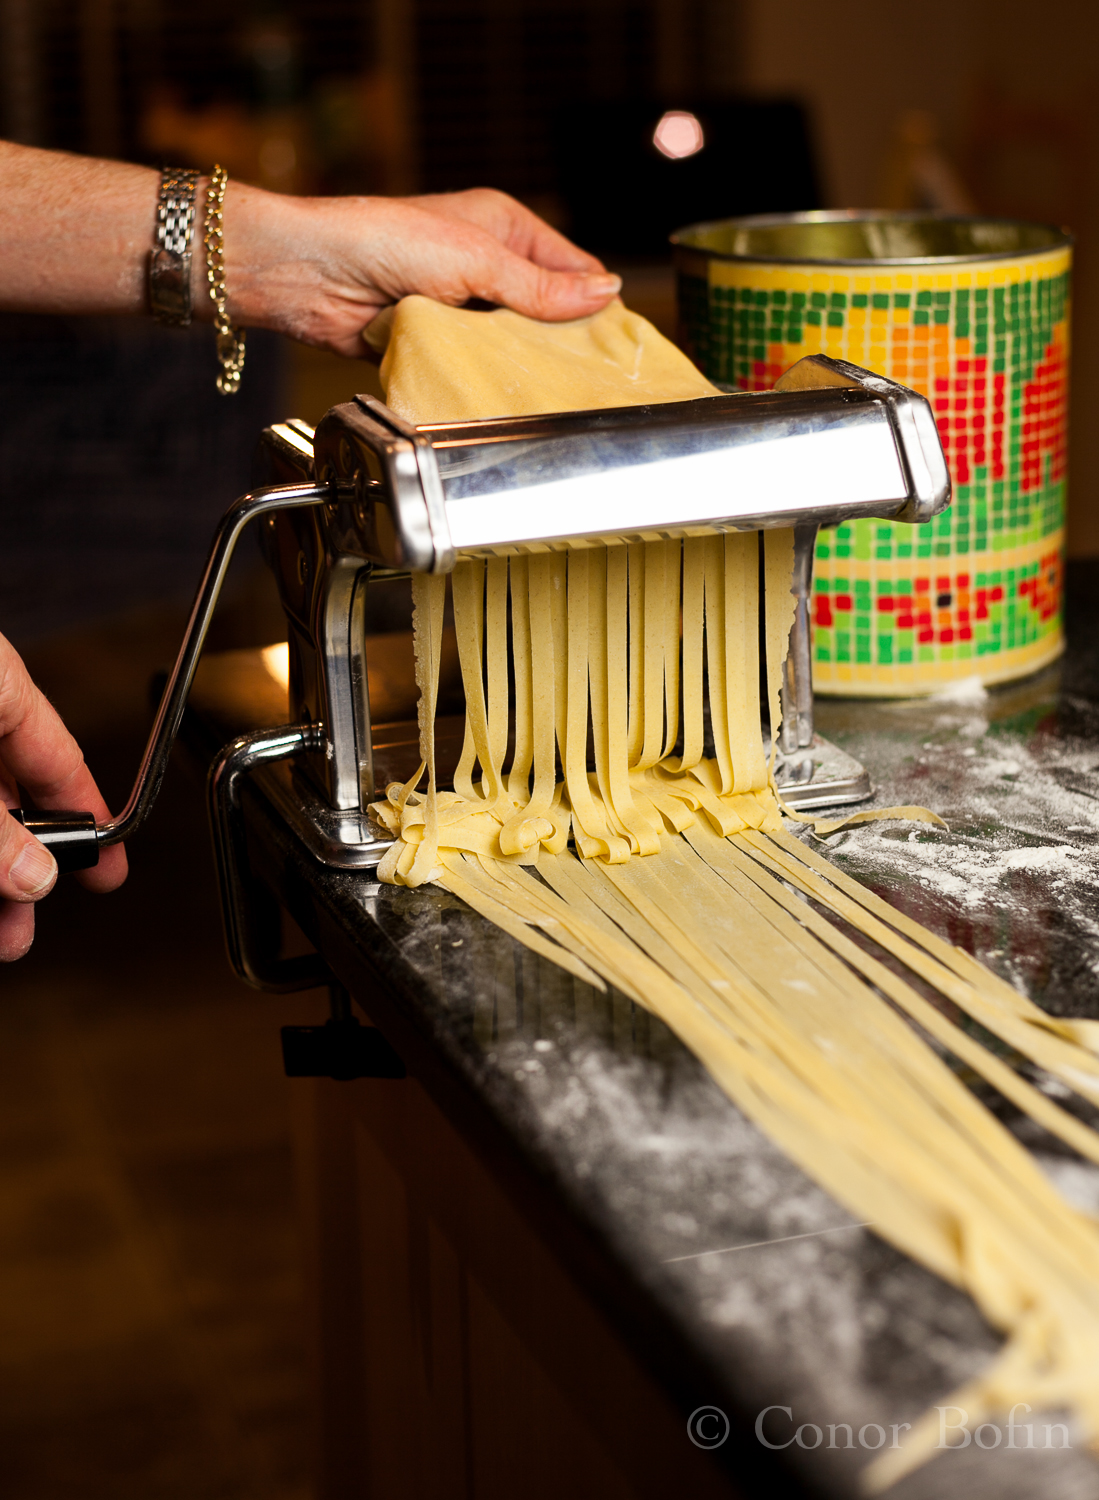 Yes, that's the Wife's hand feeding the pasta into the machine.